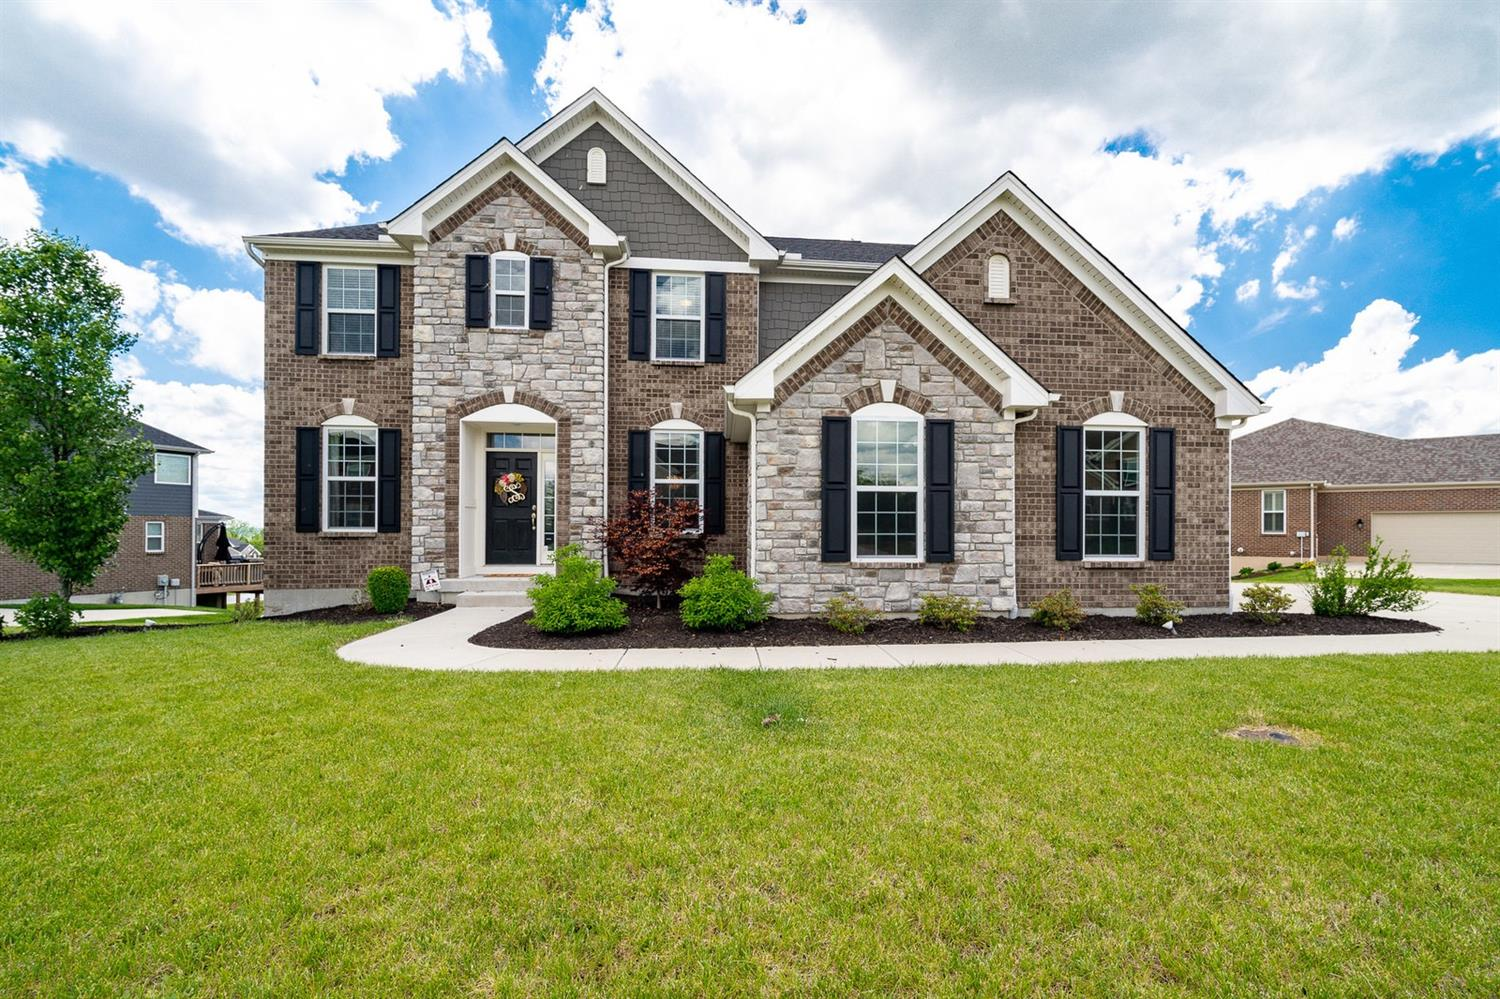 Property for sale at 7060 Keltner Drive, West Chester,  Ohio 45069